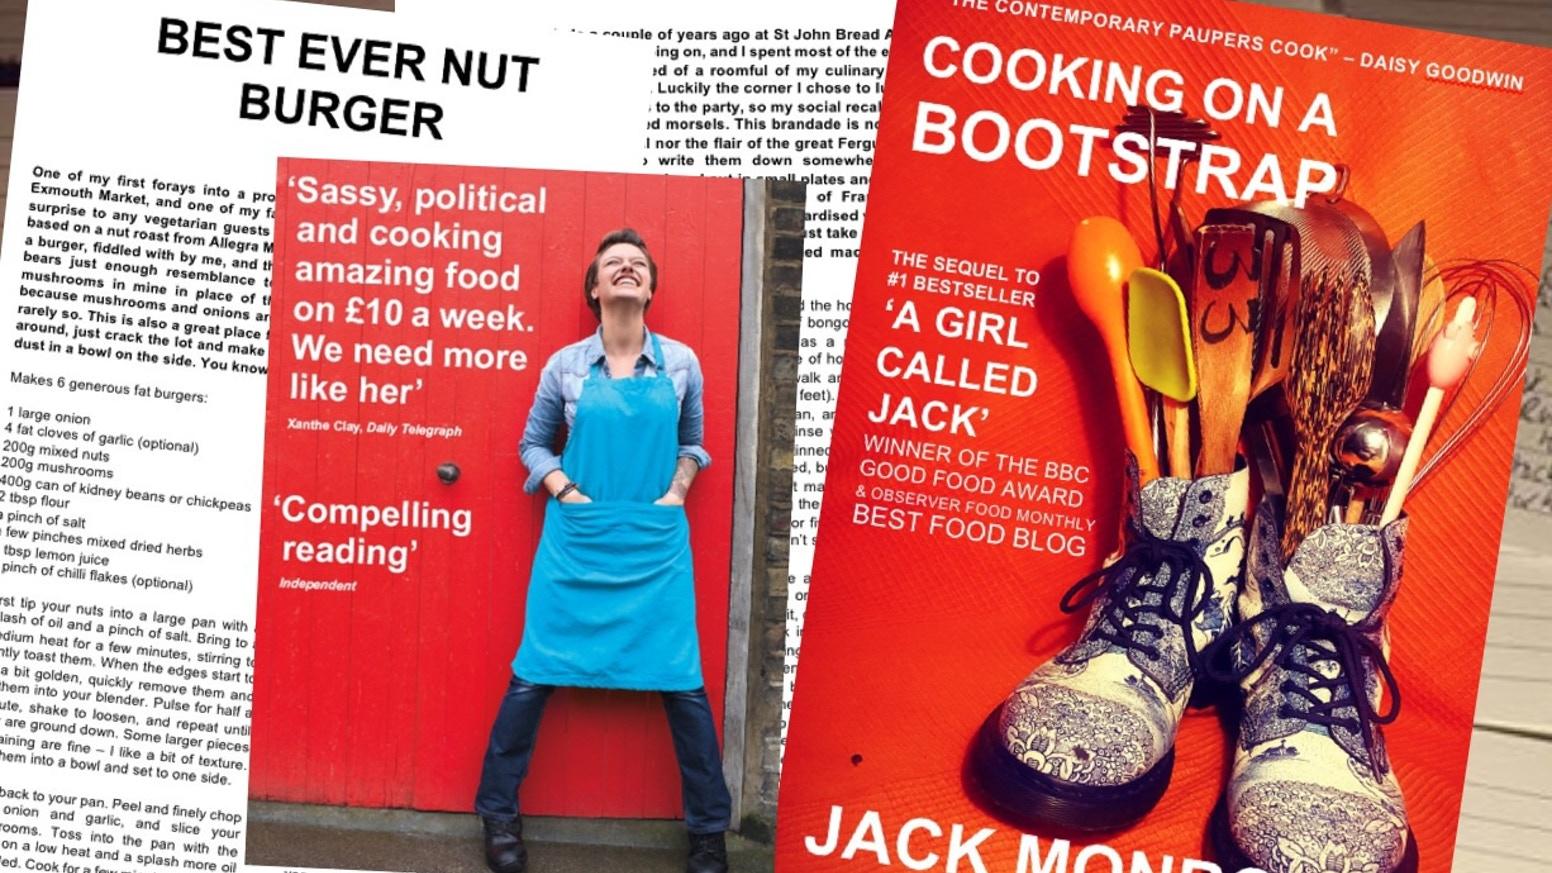 The 100 budget recipe sequel to A Girl Called Jack; pre-order yours on Kickstarter to make this happen!